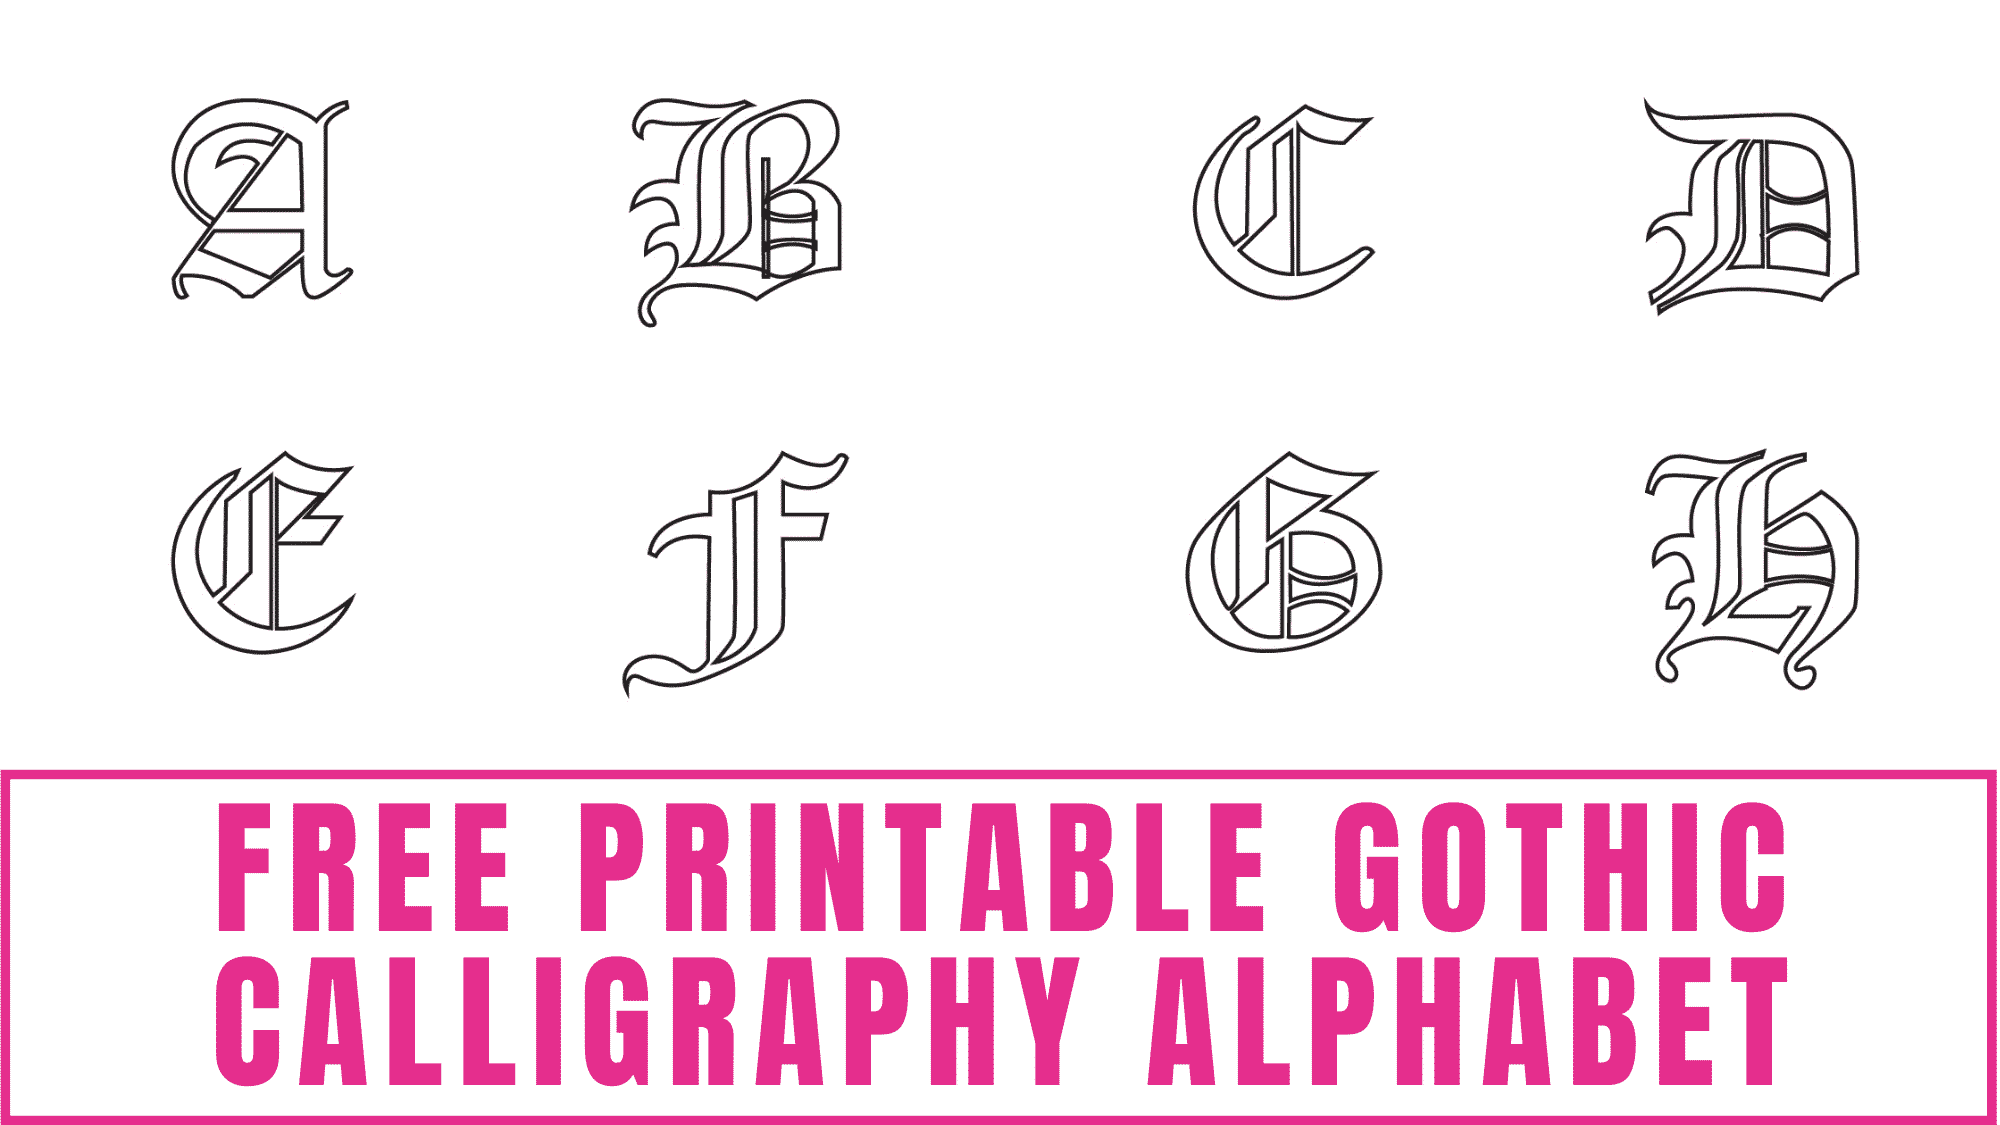 Learning how to draw gothic letters can be difficult because there are a lot of details, but when you start by tracing letters like this free printable gothic calligraphy alphabet it will become easier.